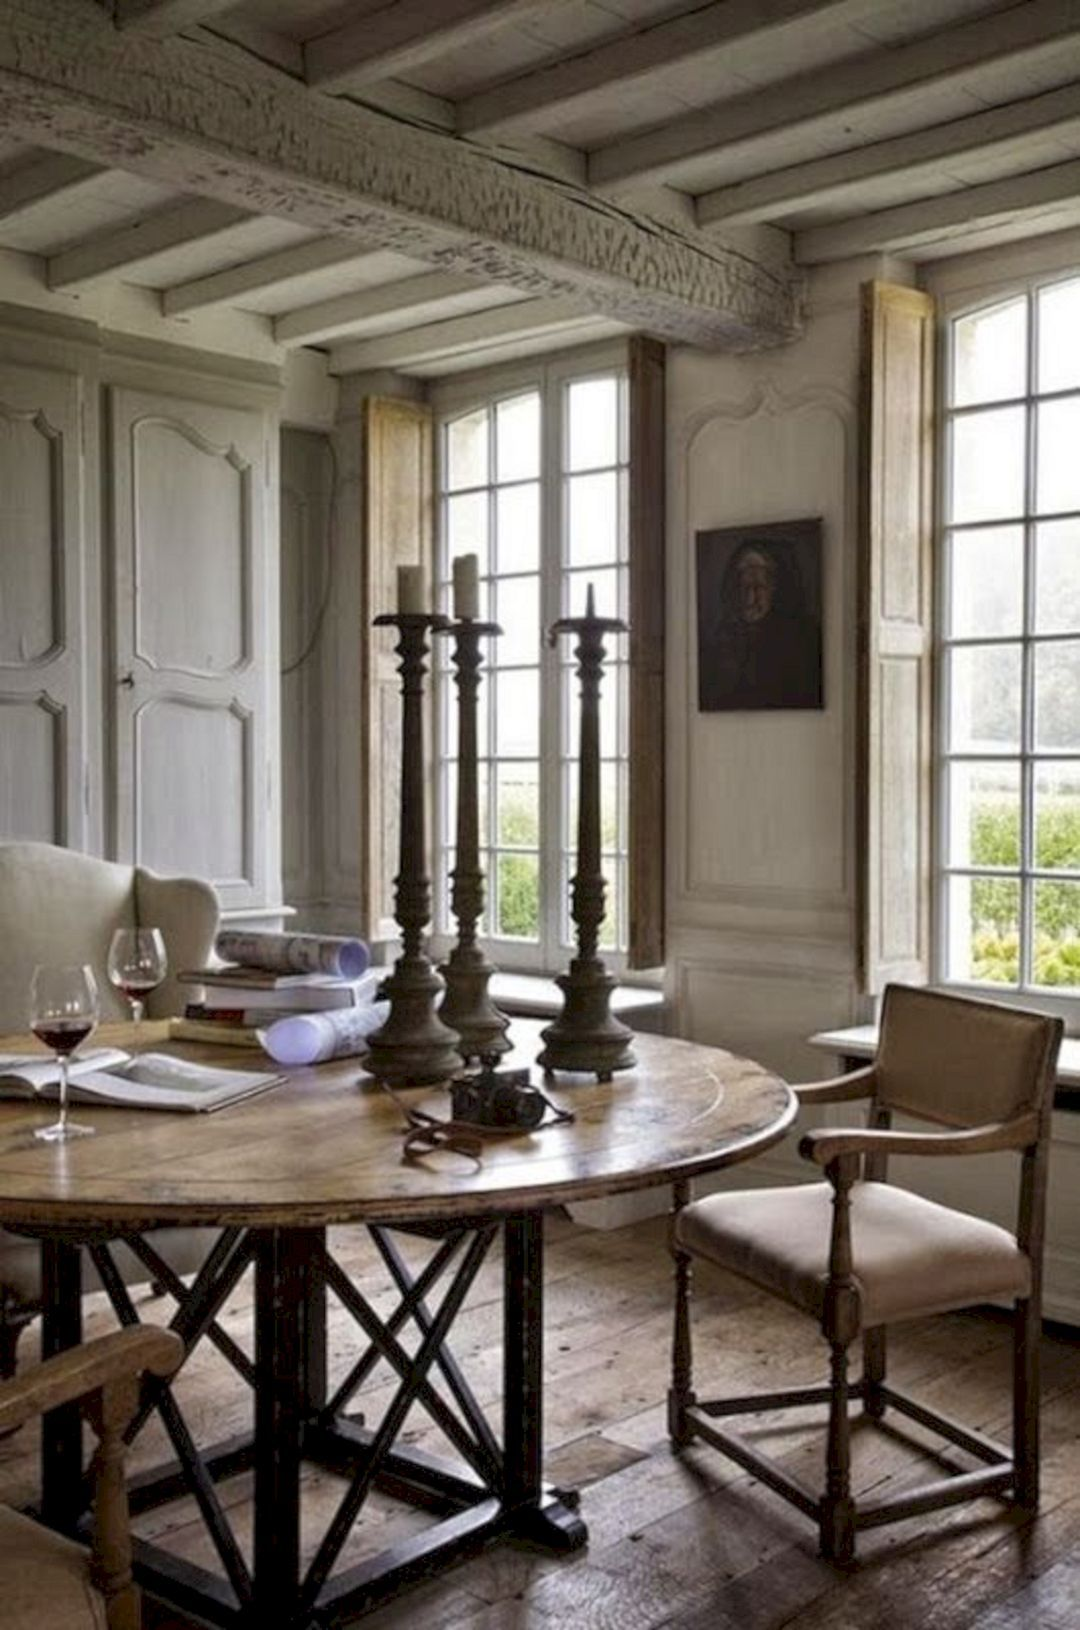 Sublime 35 Best Belgium Countryside Interior Design Ideas Https